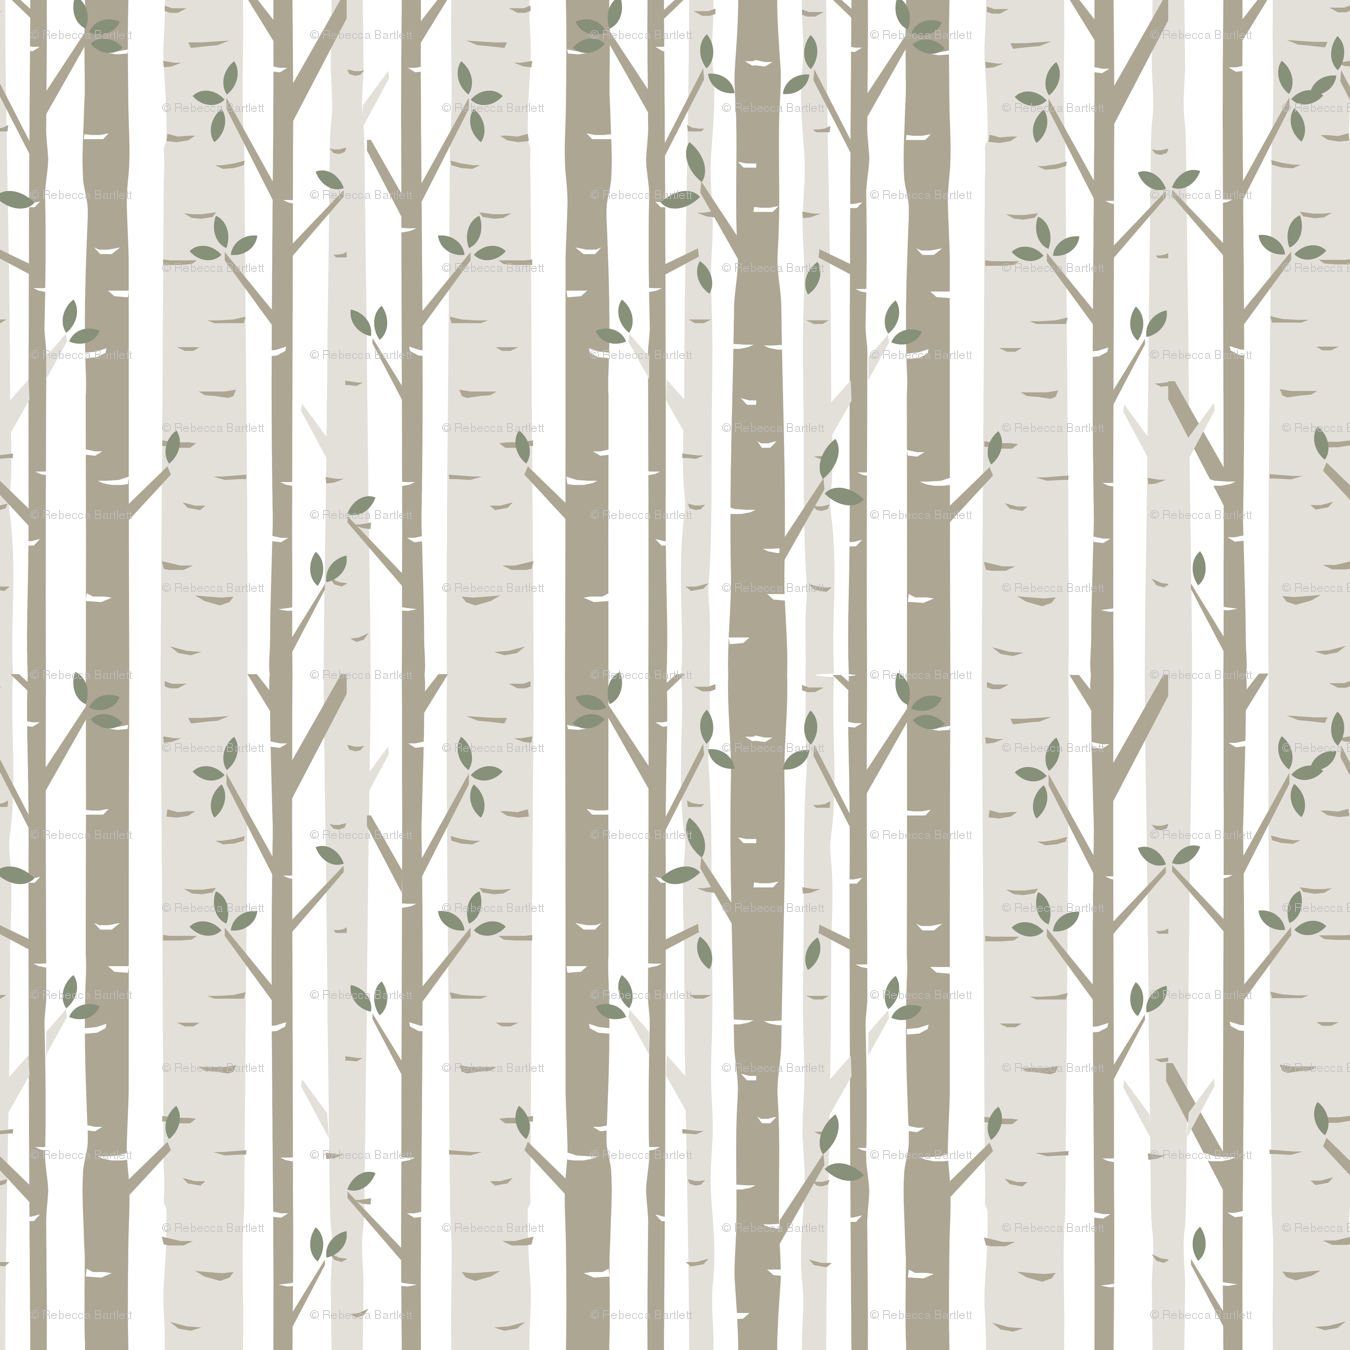 Favorite Birch Tree Fabric wallpaper - bartlett&craft - Spoonflower BQ65